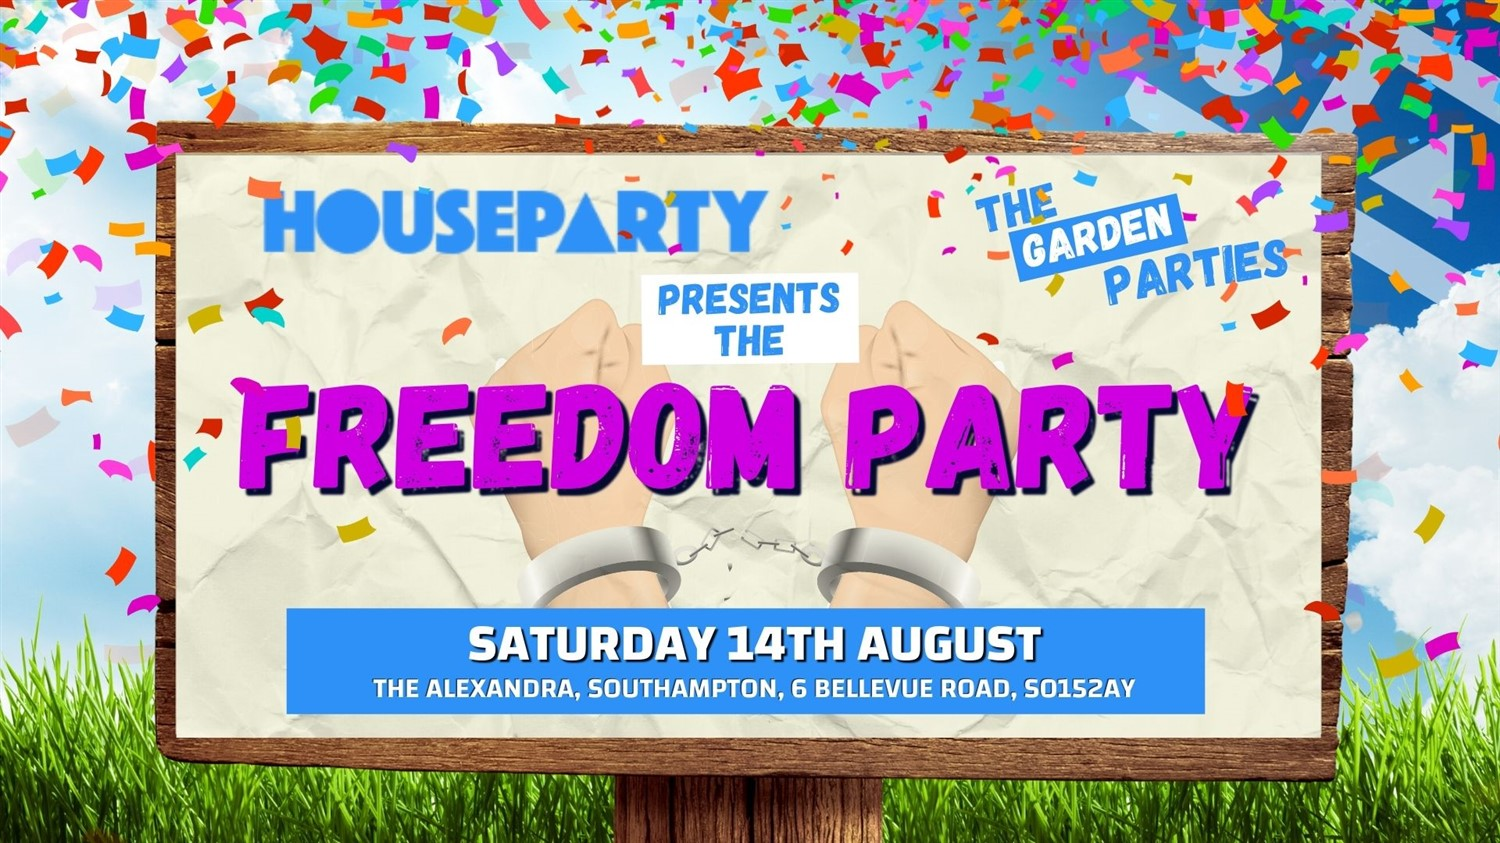 House Party Presents: The Freedom Party  on Aug 14, 15:00@The Alex - Buy tickets and Get information on House Party Europe Ltd